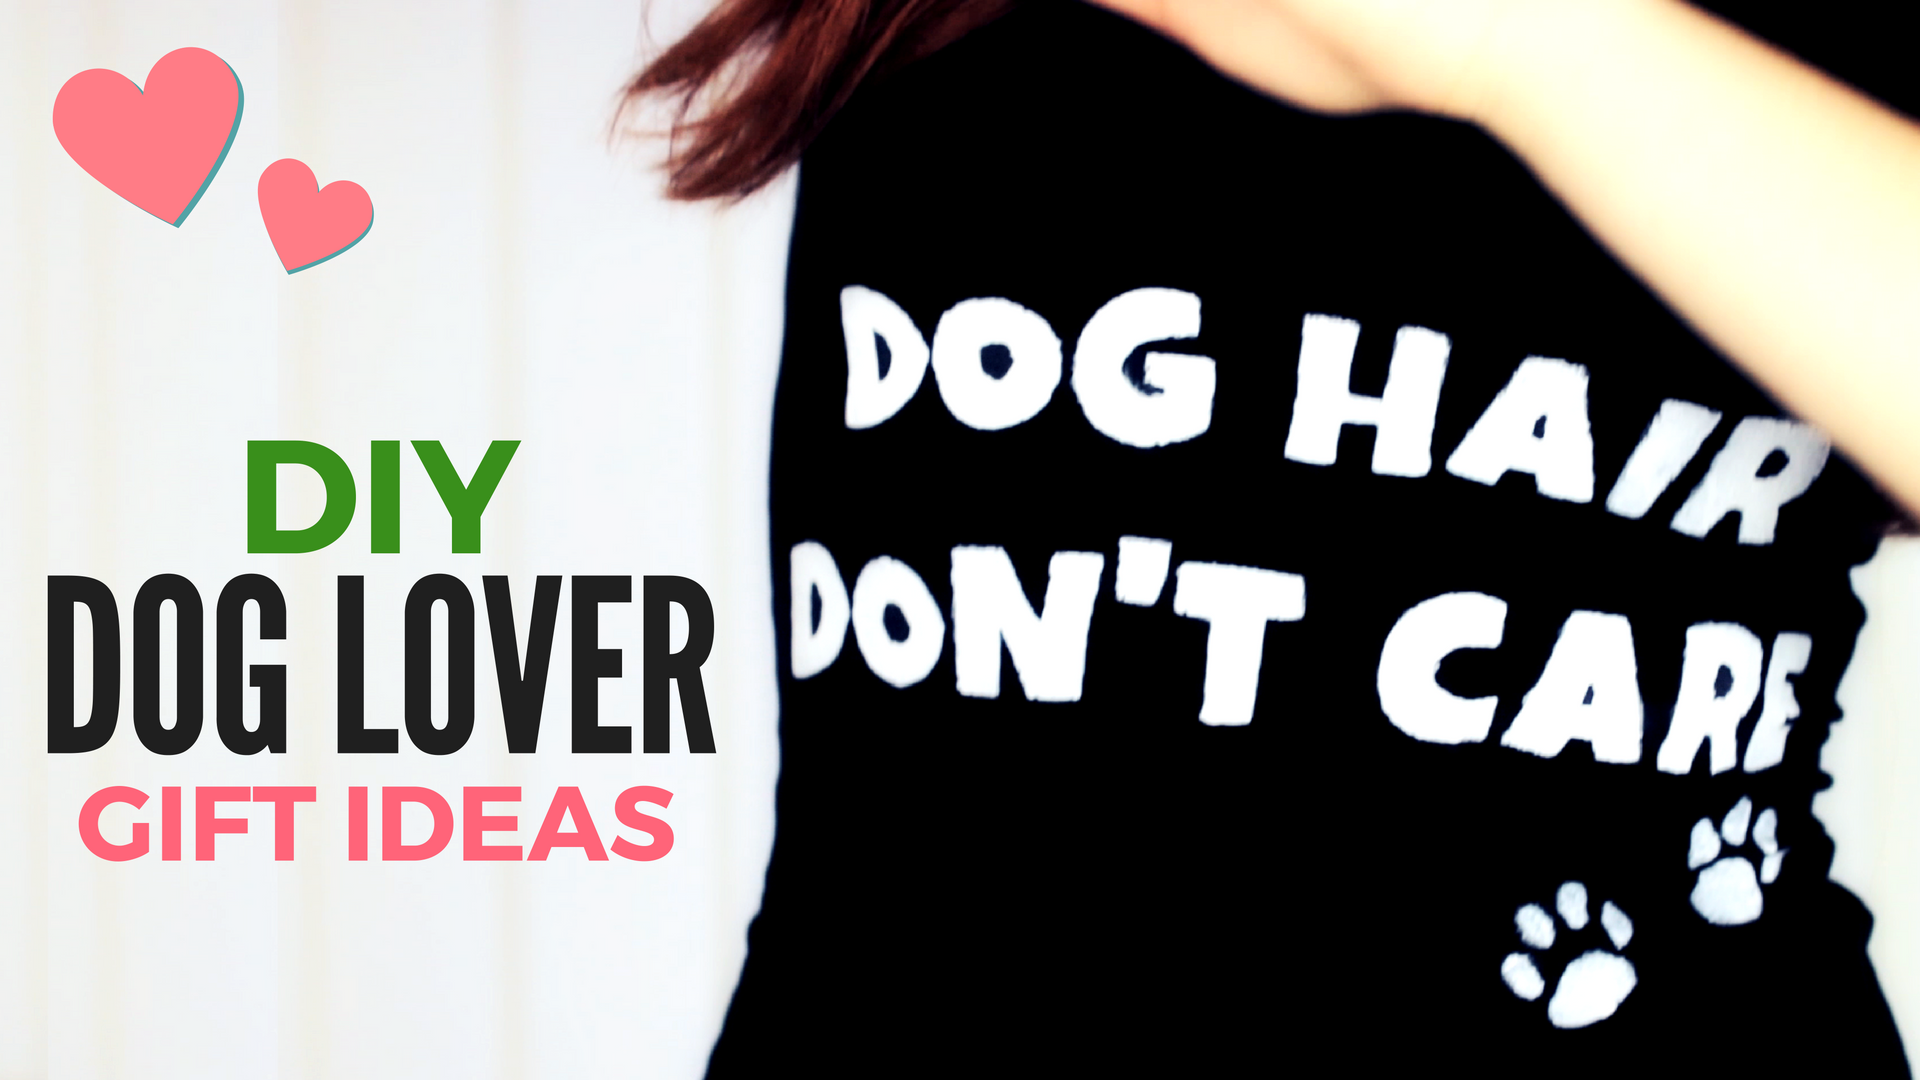 DIY_dog_lover_gift_ideas_thumbmail09